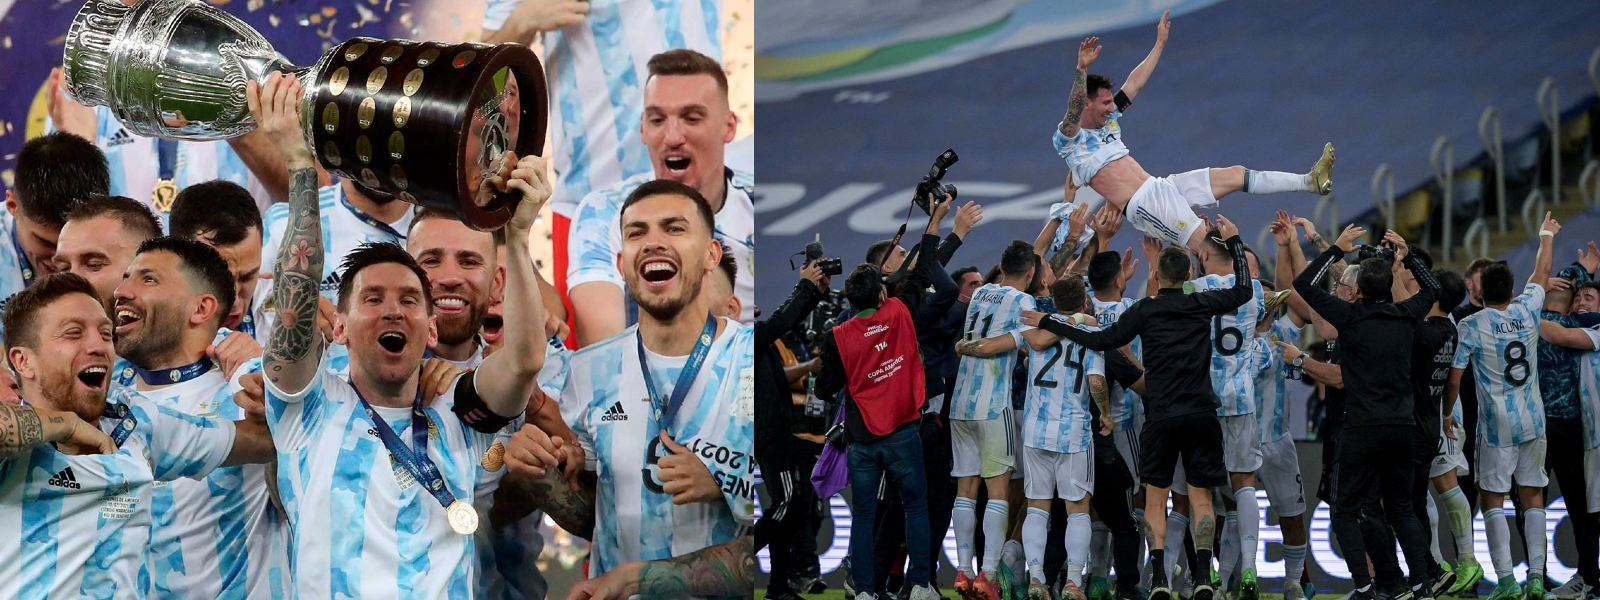 Messi claims first international trophy as Argentina wins Copa America final